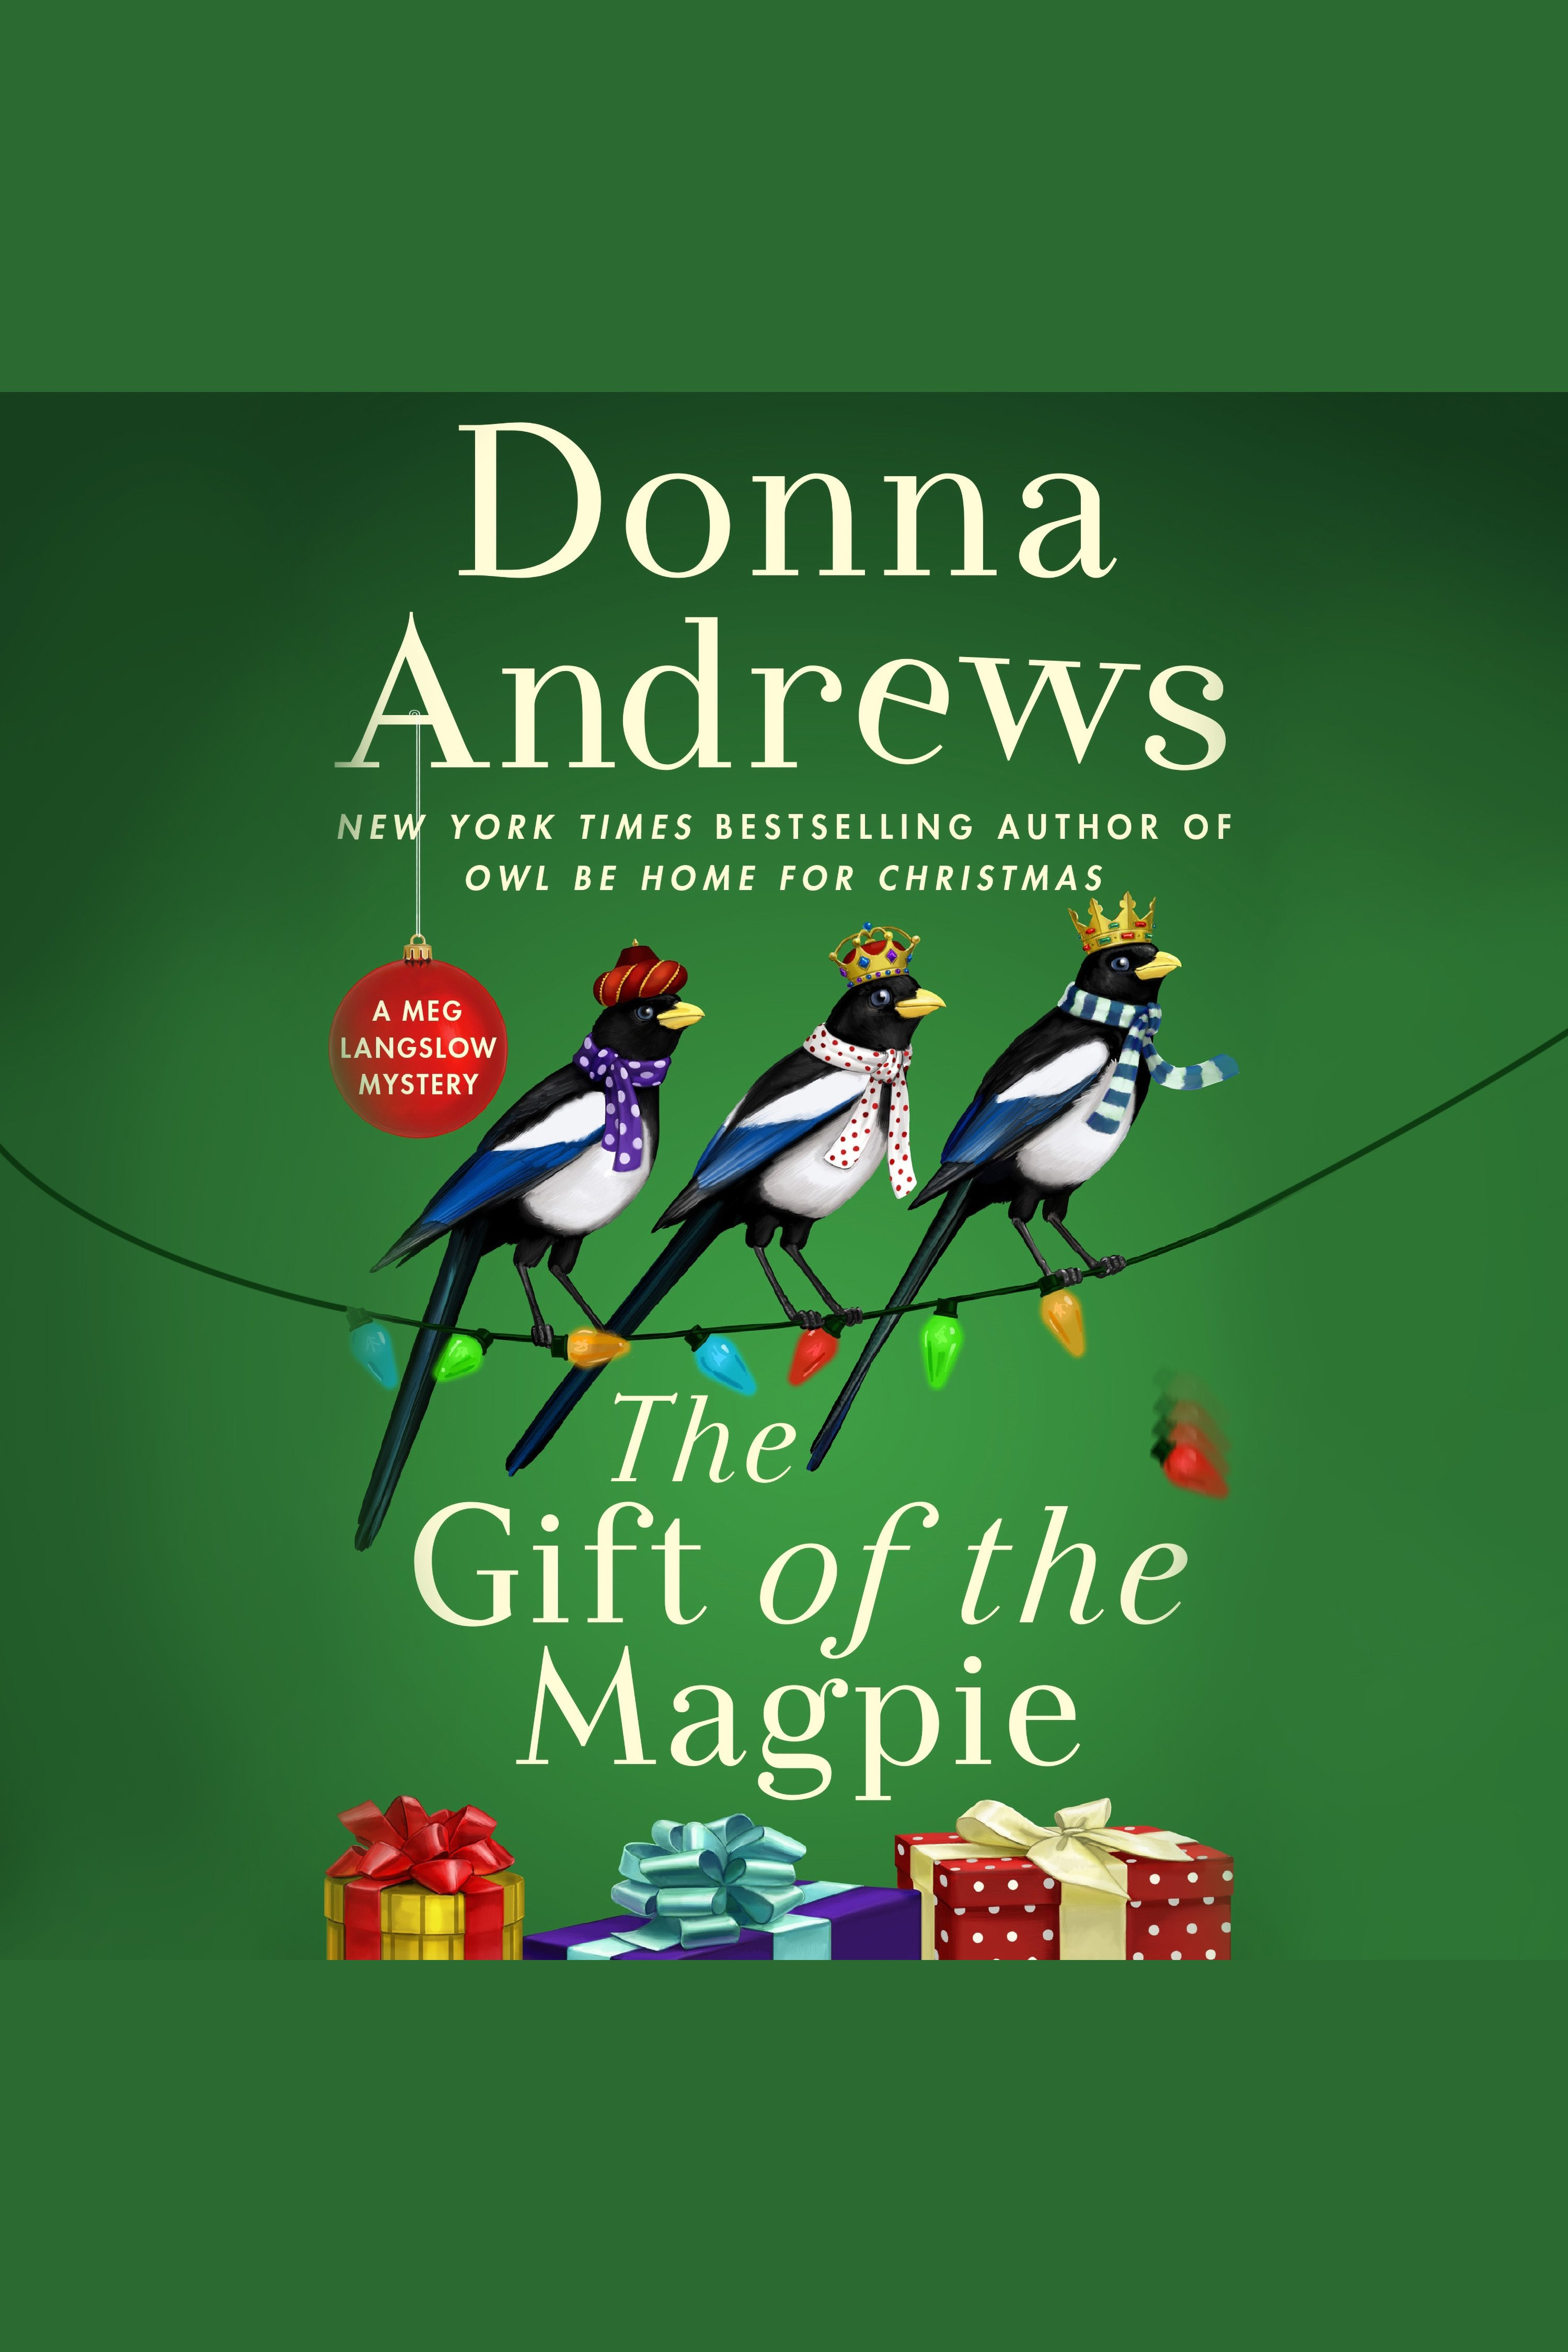 Cover Image of Gift of the Magpie, The